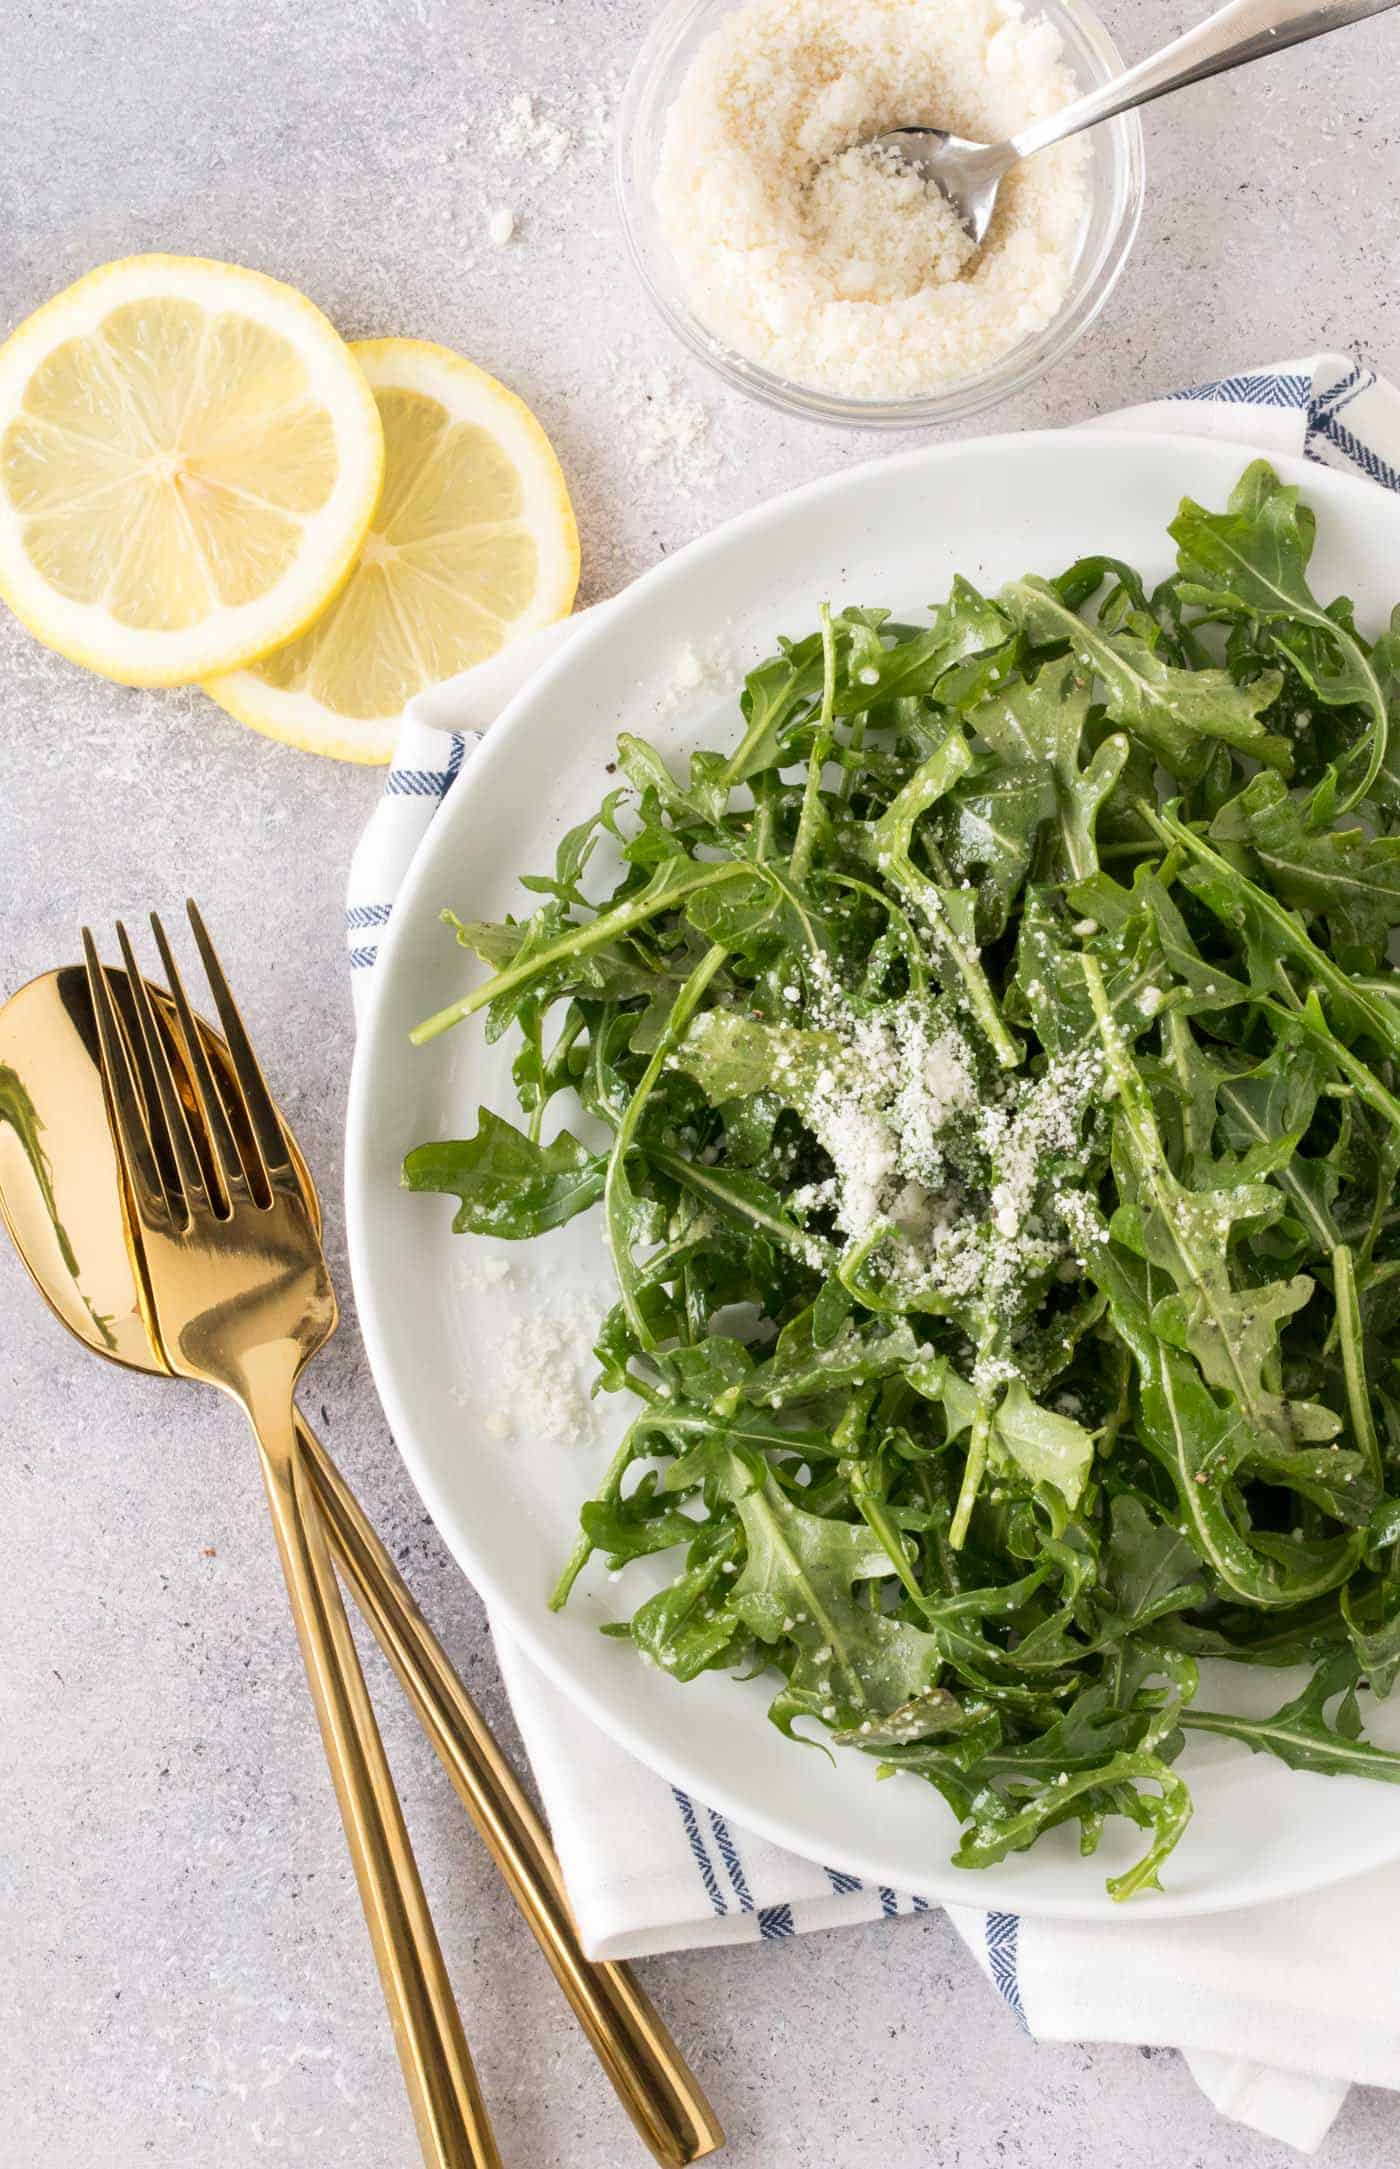 Large white bowl filled with Arugula Salad with Lemon Vinaigrette, with freshly shaved parmesan cheese and lemon wedges